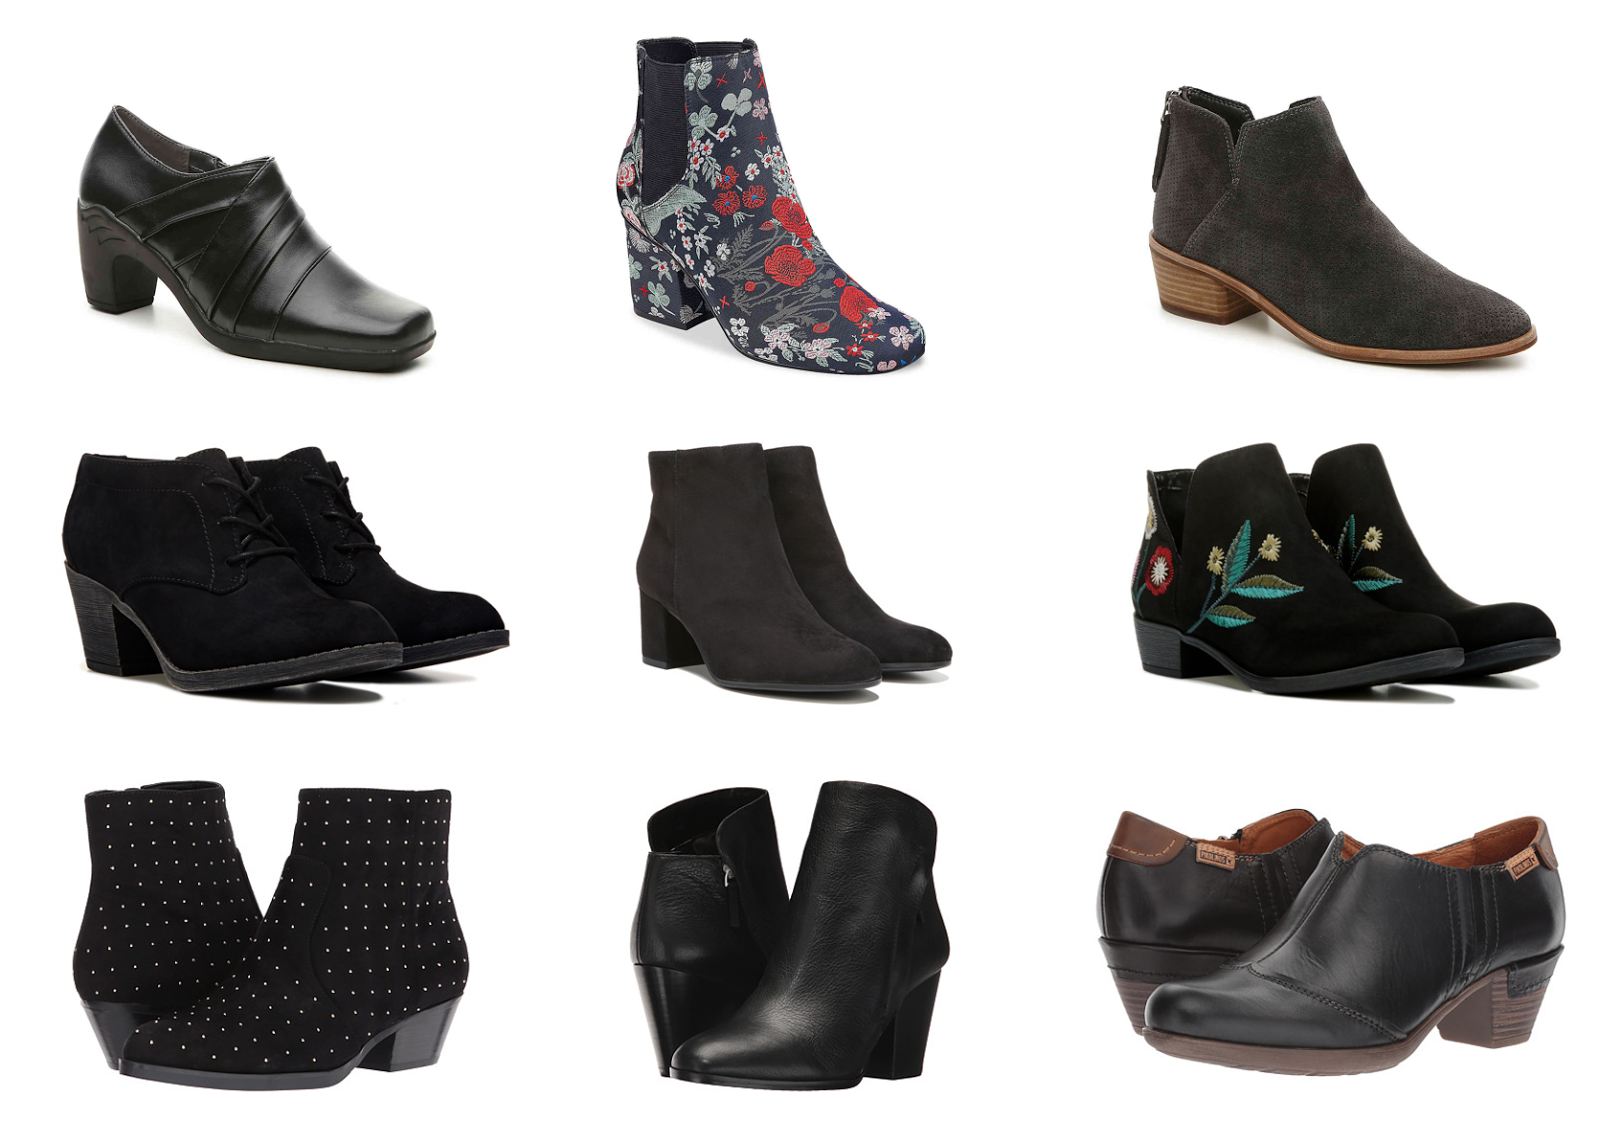 42a7de84c1a8 ... heels dsw steve madden coupons Source · My Life and Ponderings Stepping  Into Fall Booties